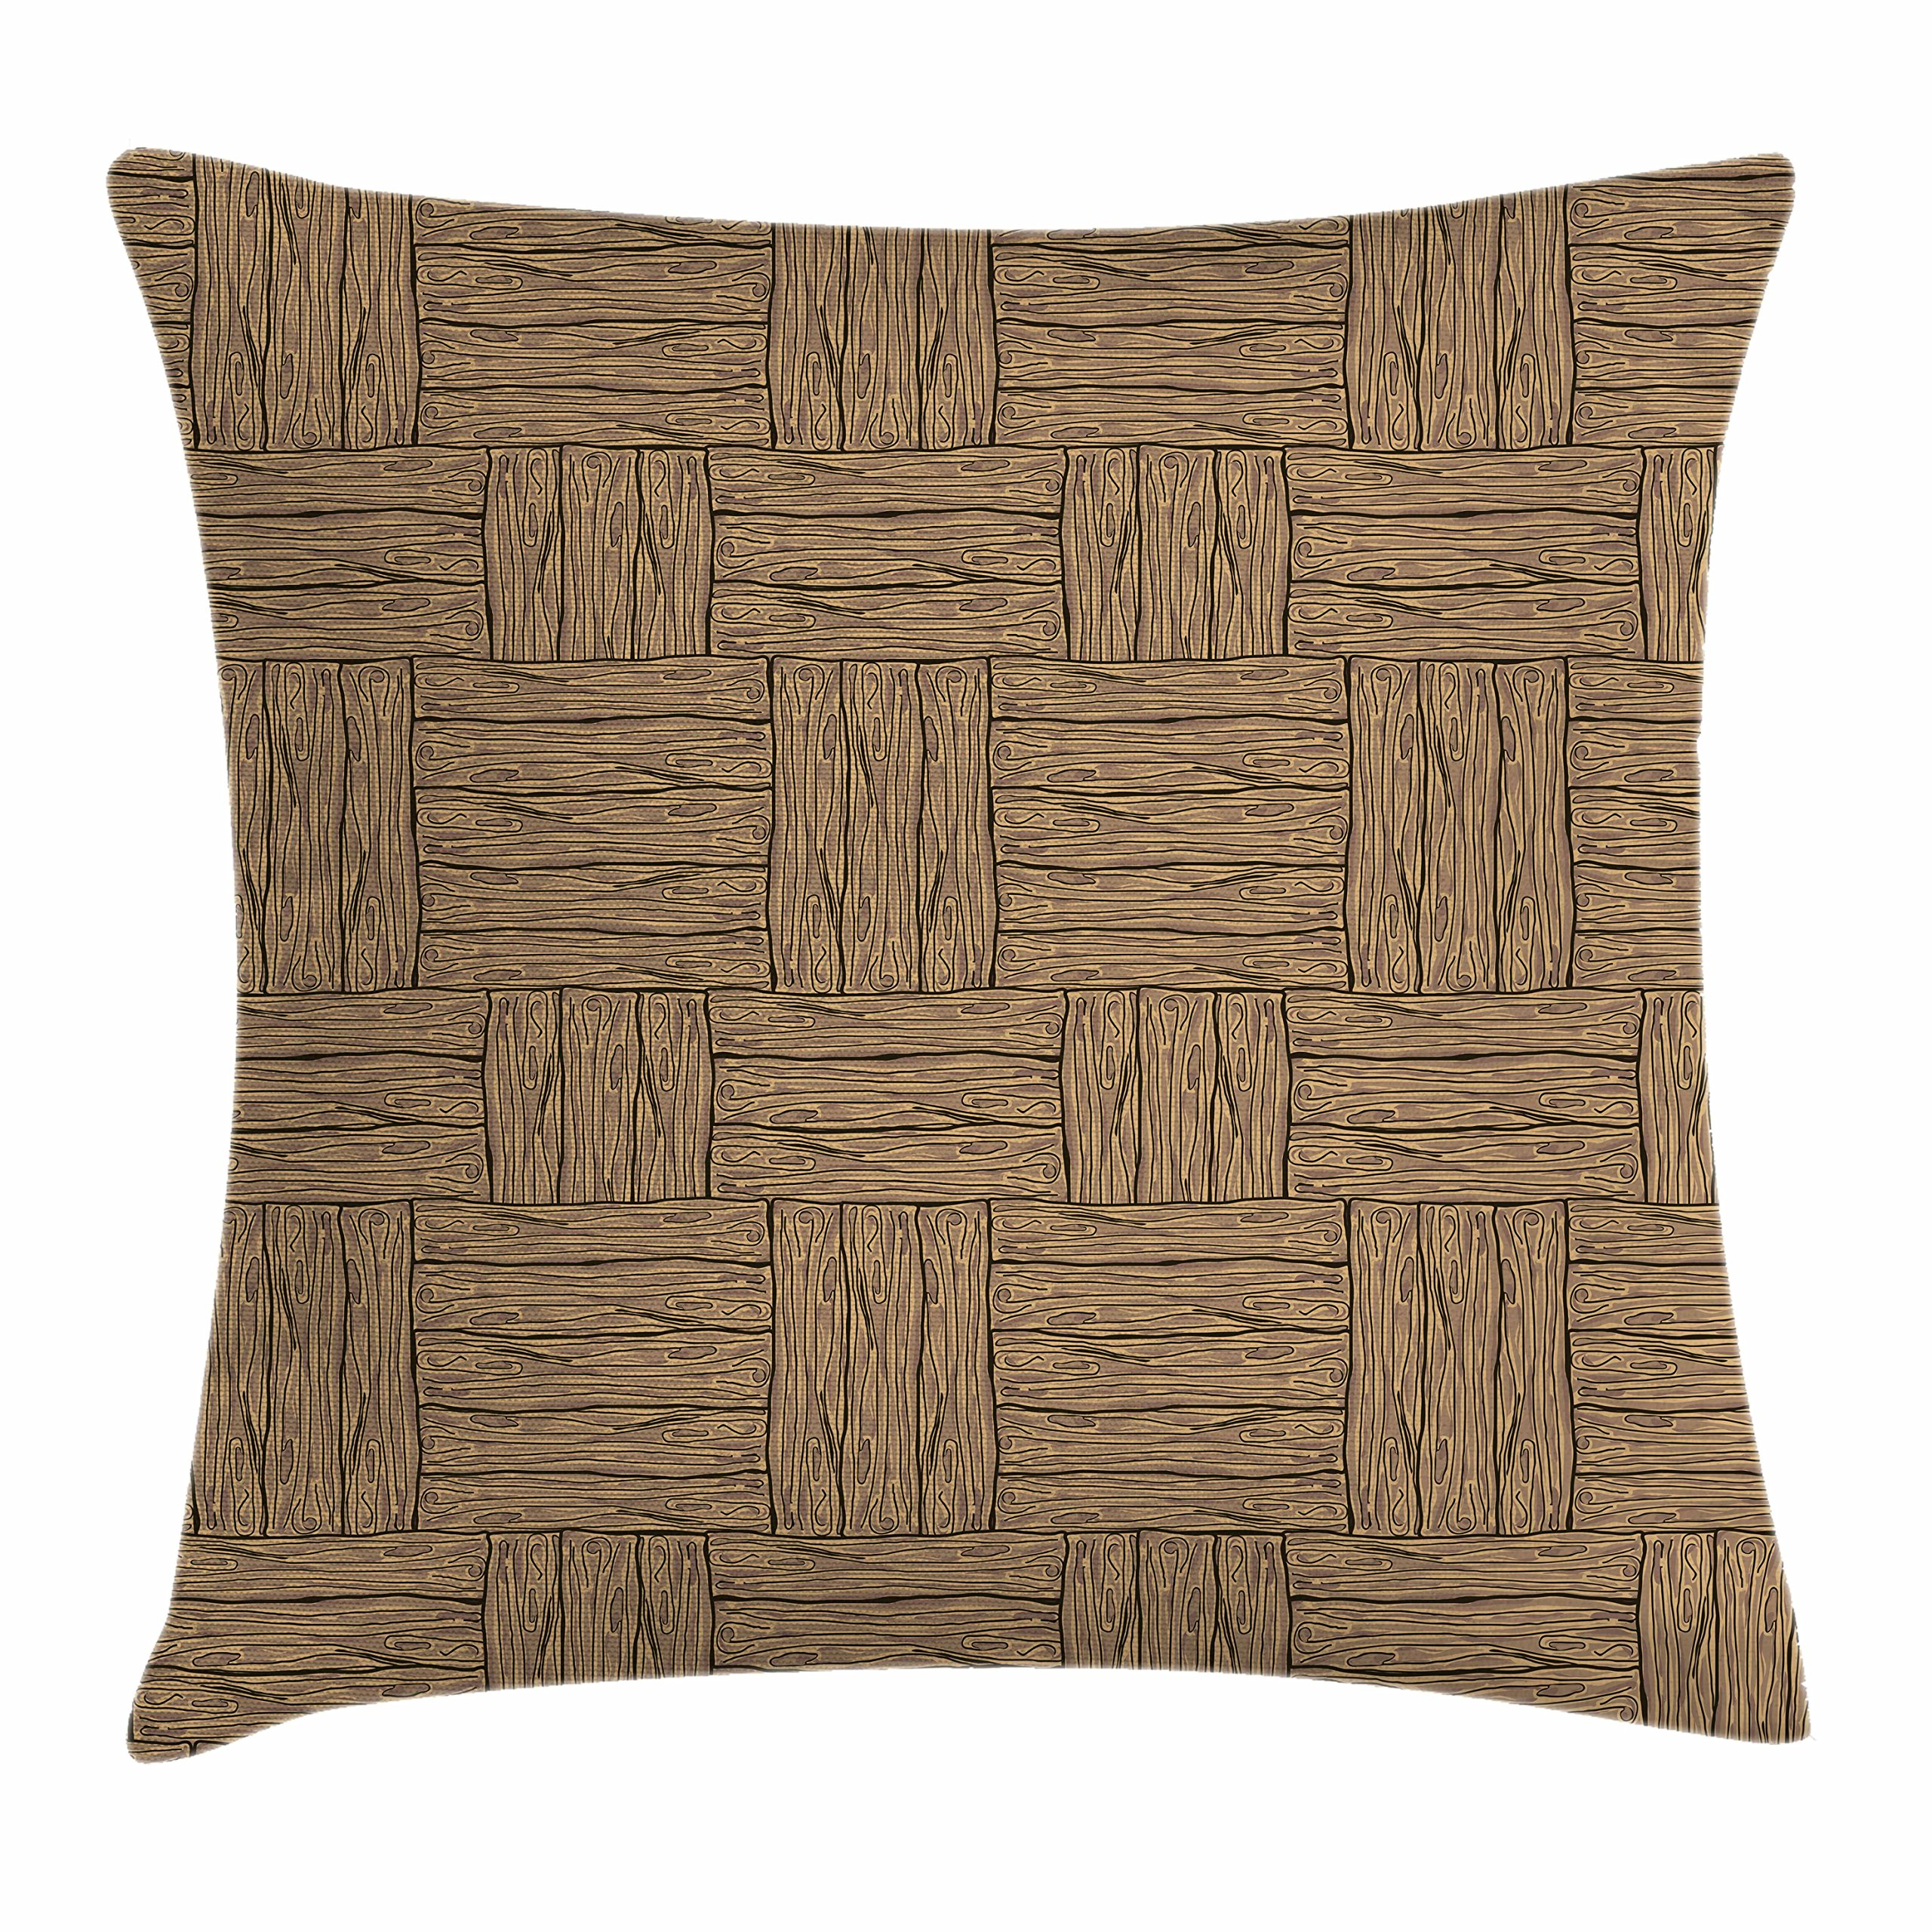 Amazon Com Ambesonne Rustic Throw Pillow Cushion Cover Wooden Texture Pattern In Cartoon Drawing Style Abstract Parquet Floor Design Decorative Square Accent Pillow Case 40 X 40 Pale Brown Black Home Kitchen